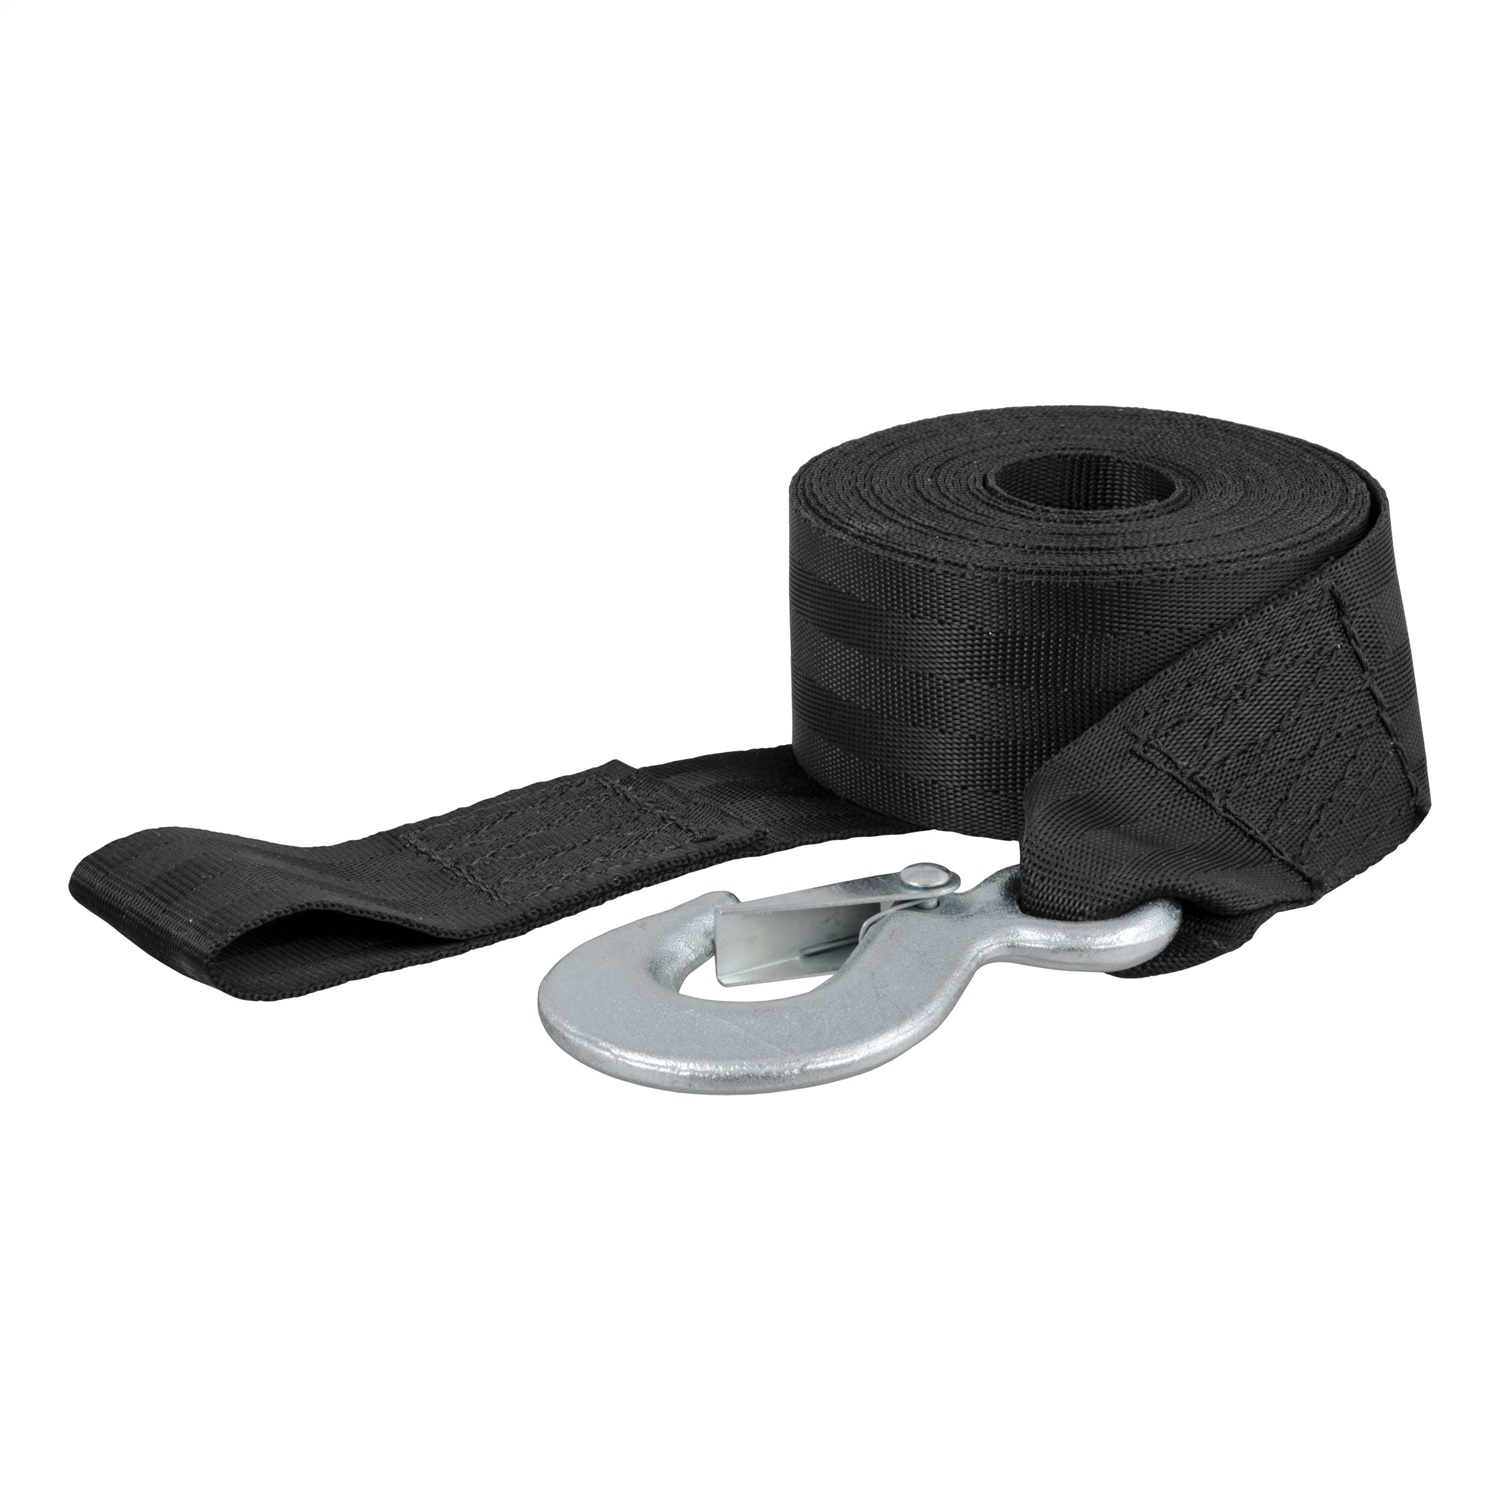 Winch Strap, Length-20 ft., Width-2 in., 3300lbs. Break Strength, 1100lbs. Work Load, Nylon Web, w/Zinc Snap Hook